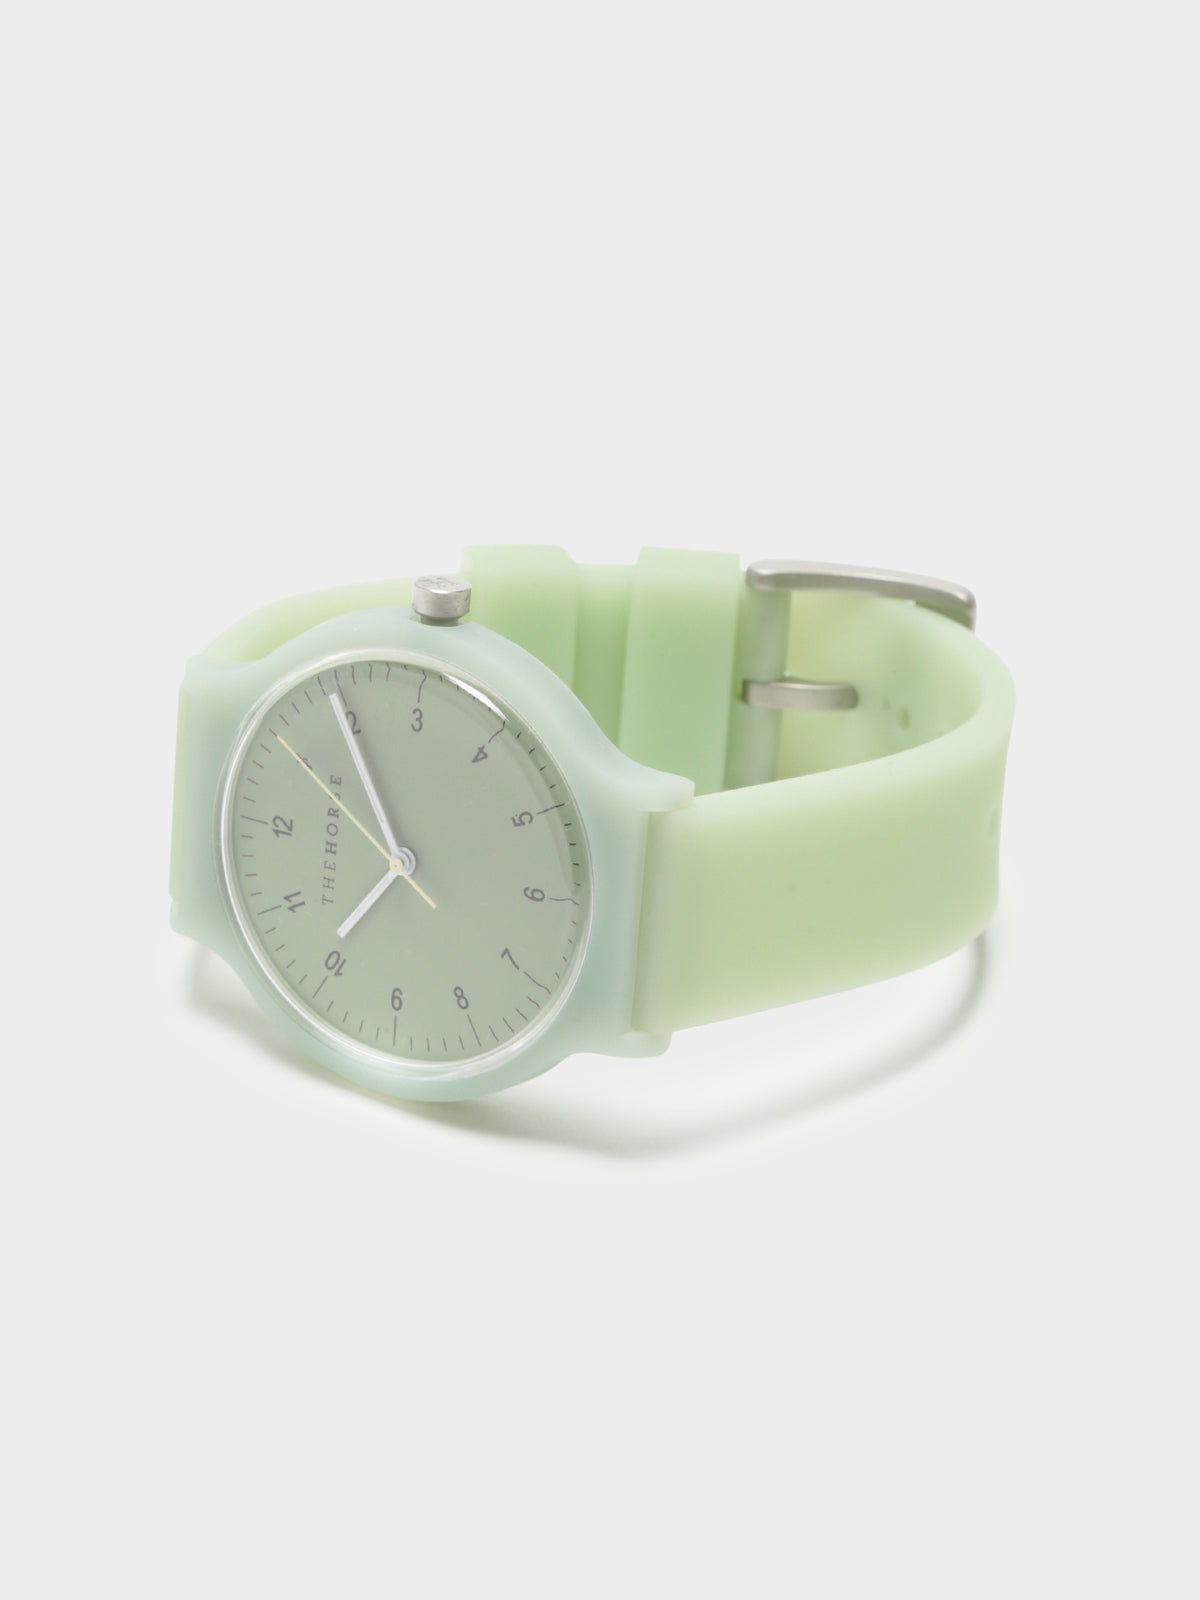 The Blockout Watch in Light Green